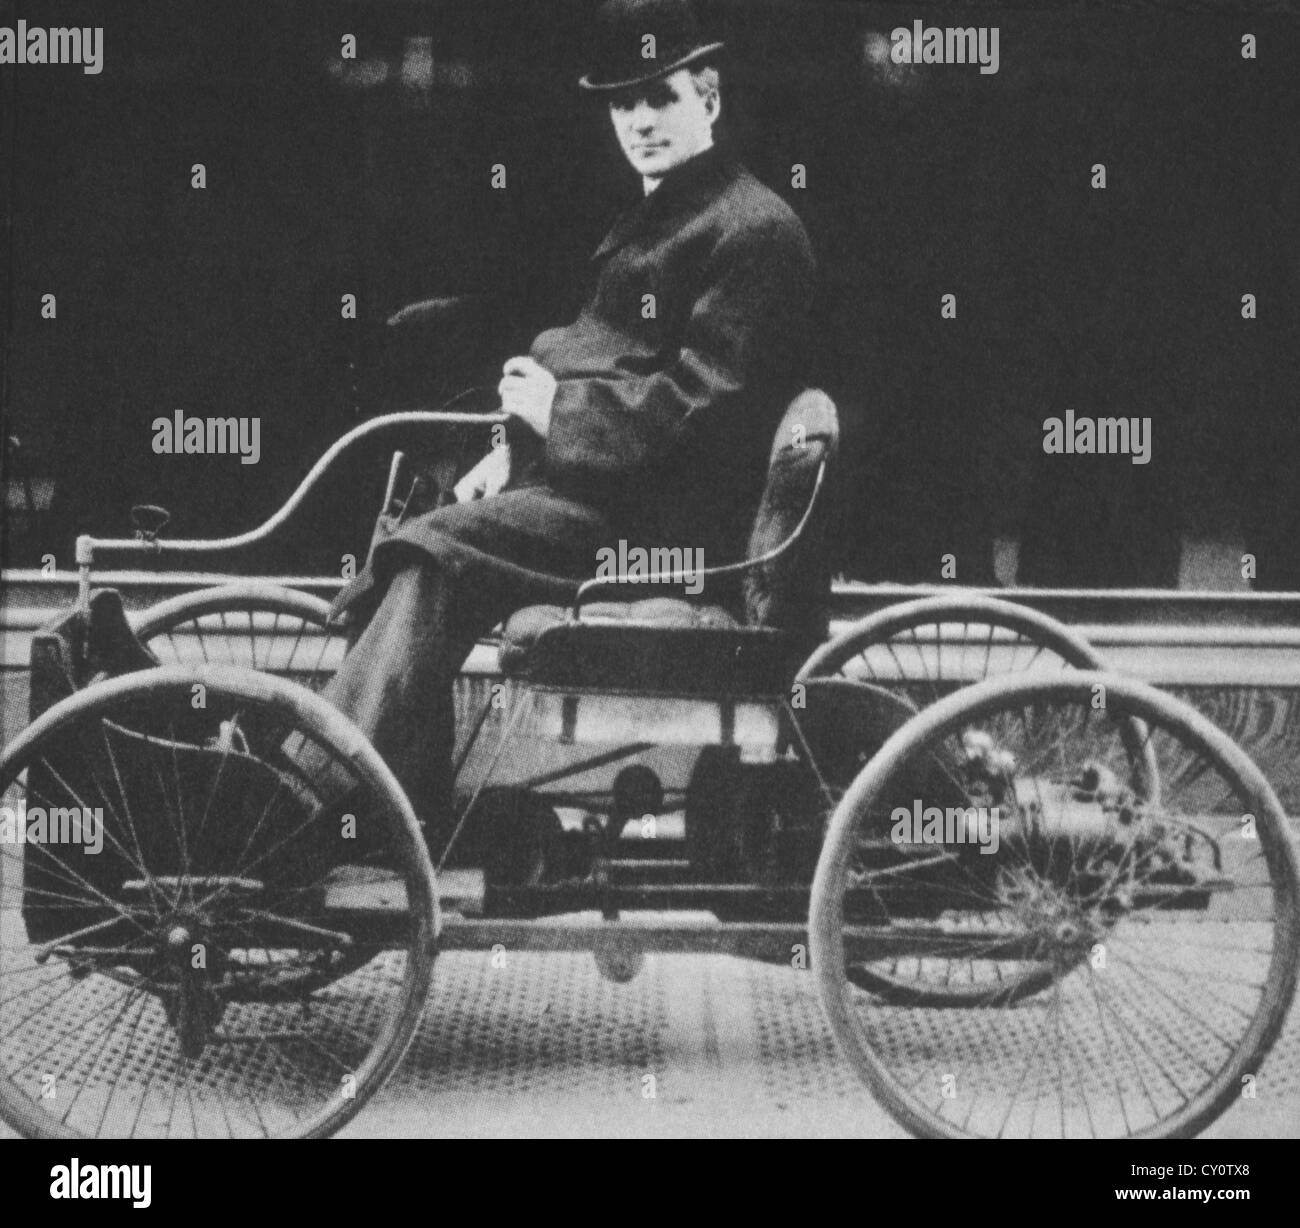 Henry Ford in his First Passenger Automobile, Quadricycle, First ...